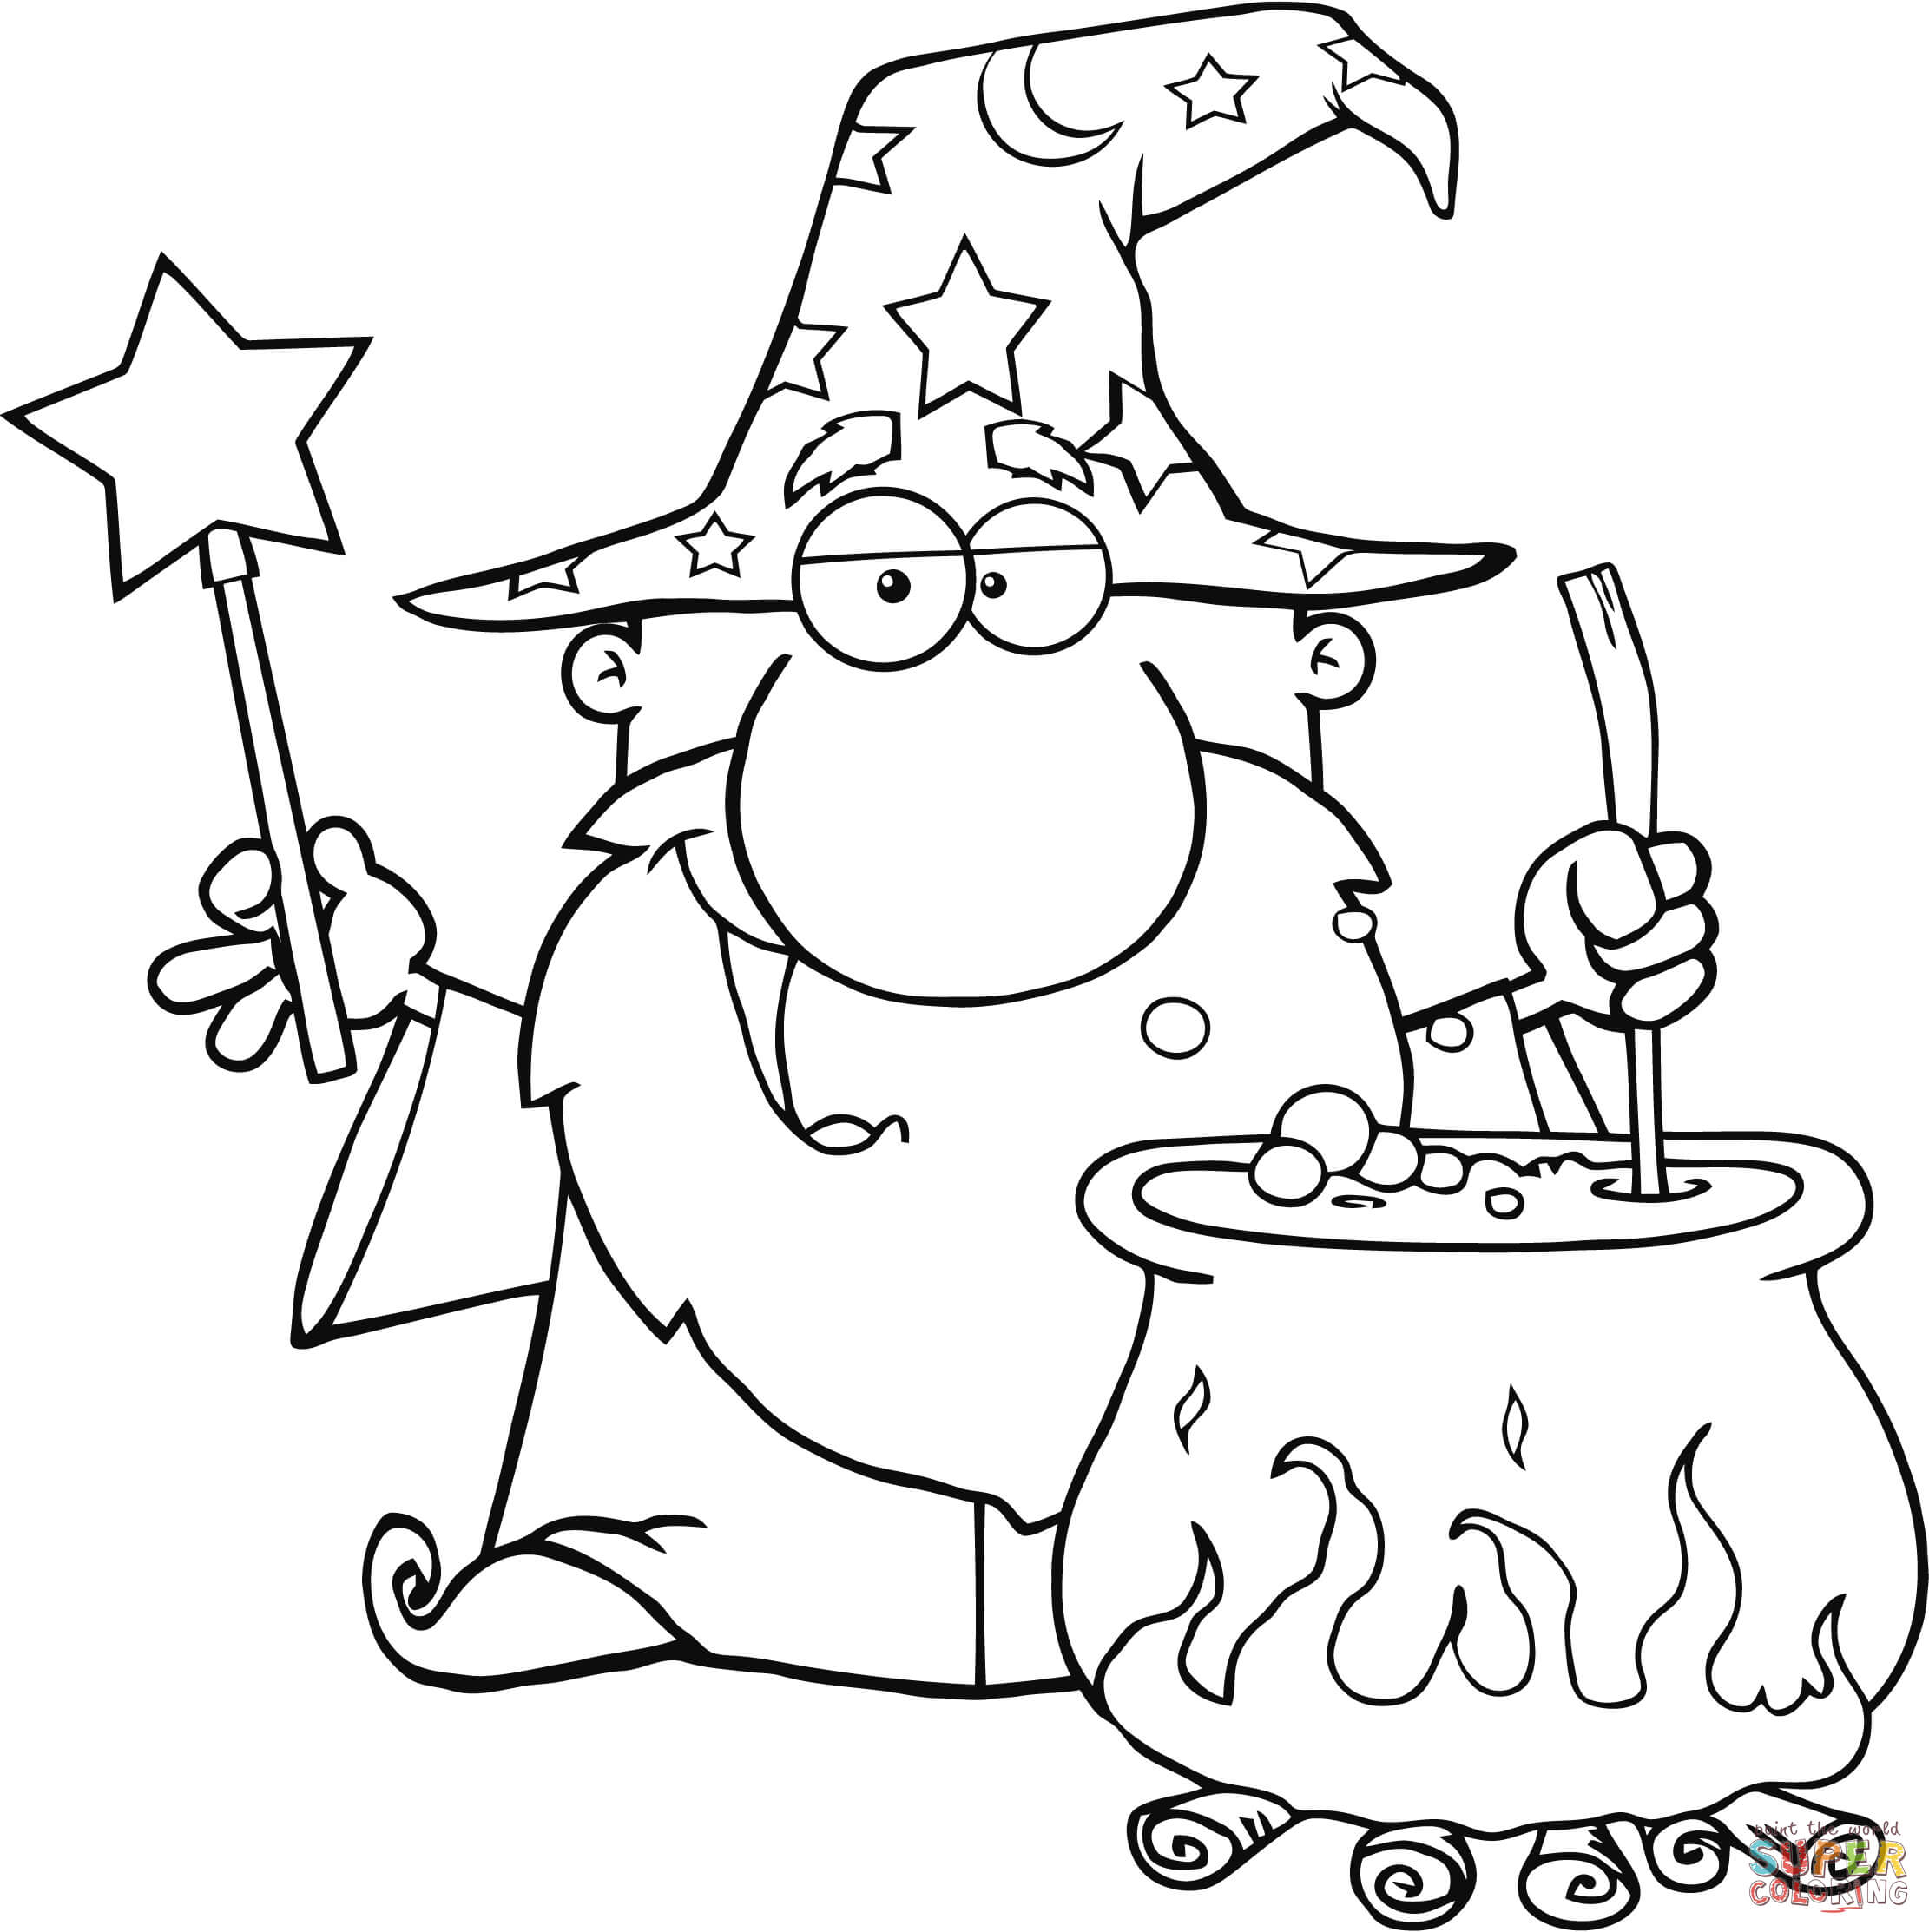 Wizard Coloring Pages Free Coloring Pages Download | Xsibe wizard ...